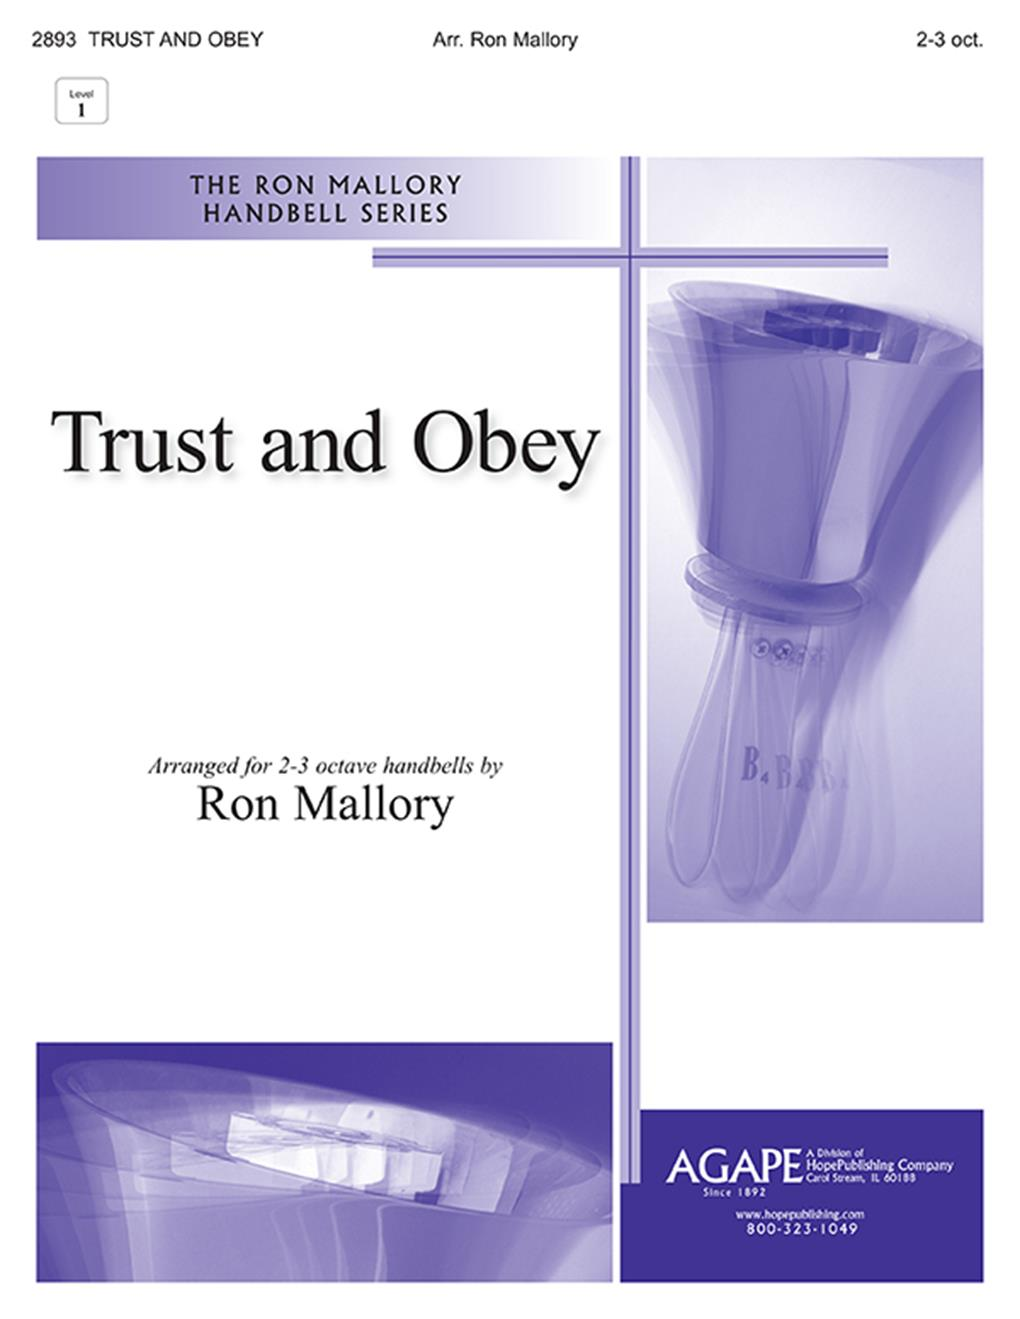 Trust and Obey - 2-3 Oct. Cover Image